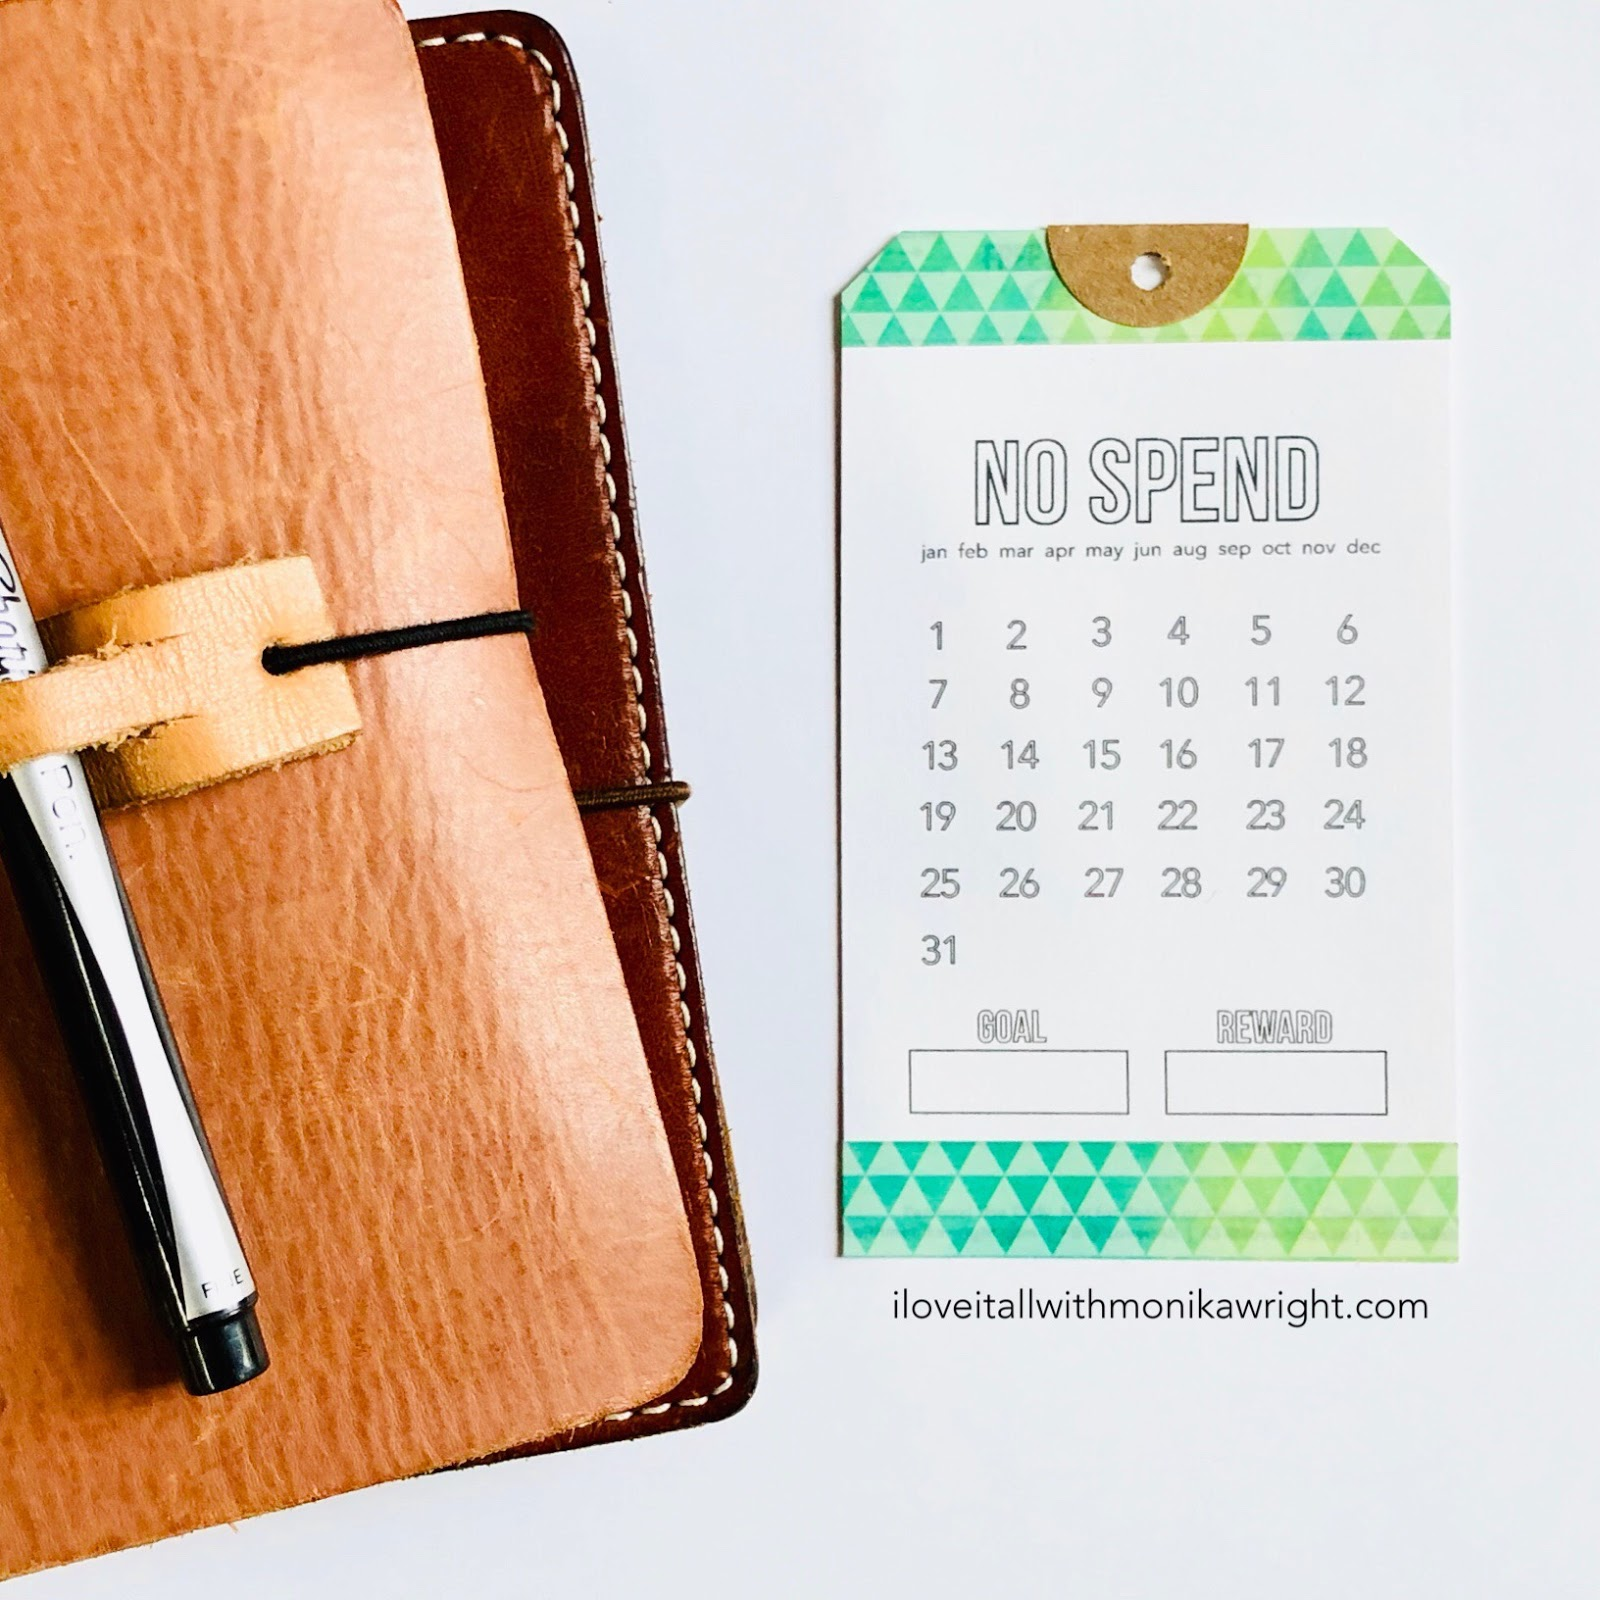 #no spend #tracker #printable #no spend tracker #budget #budgeting #monthly #no spend month #journal card #planner